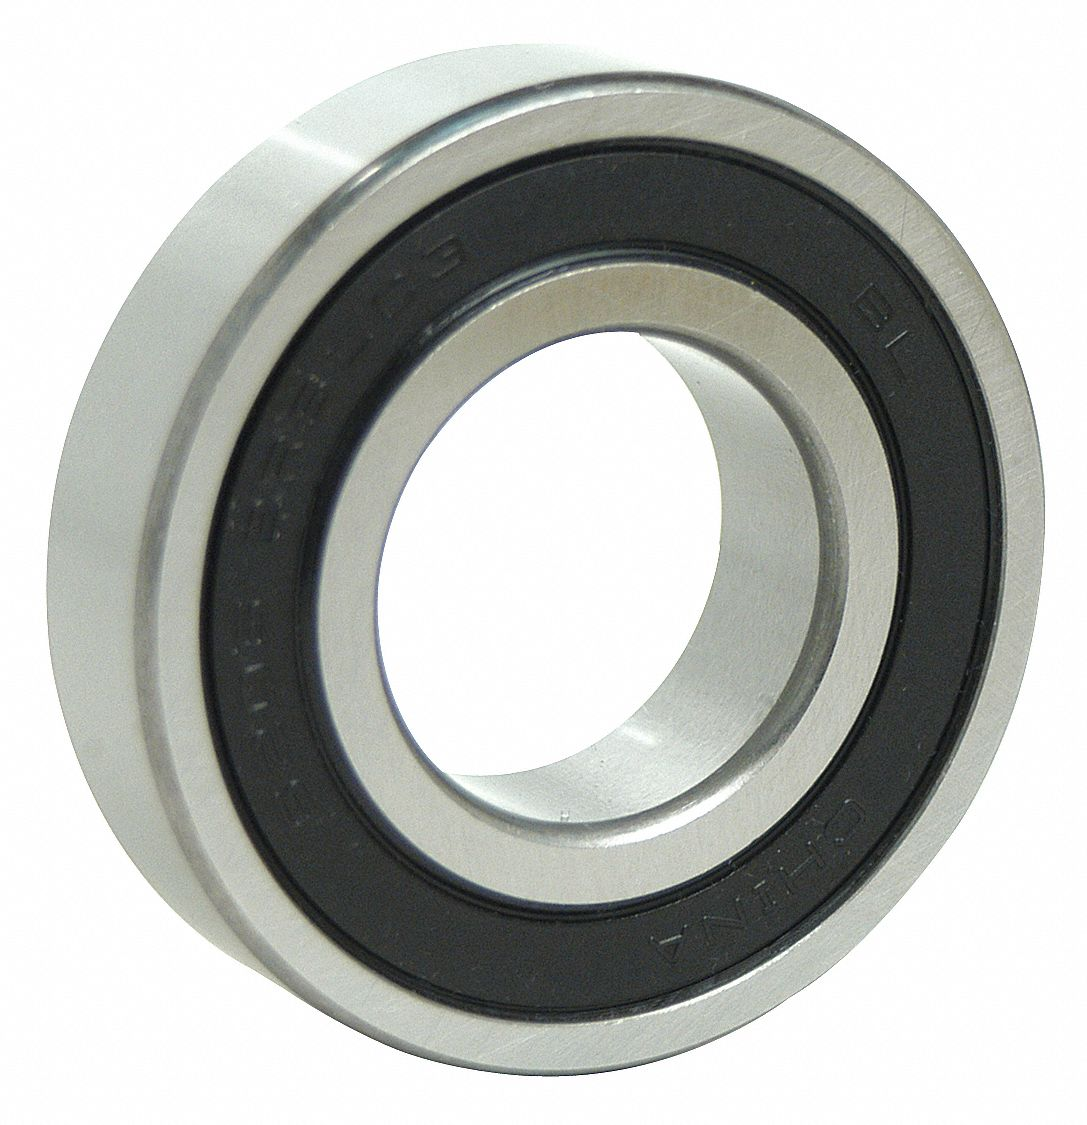 1621-2RS 100PCS FACTORY NEW DOUBLE SEALED  BEARINGS SHIPS FROM THE USA